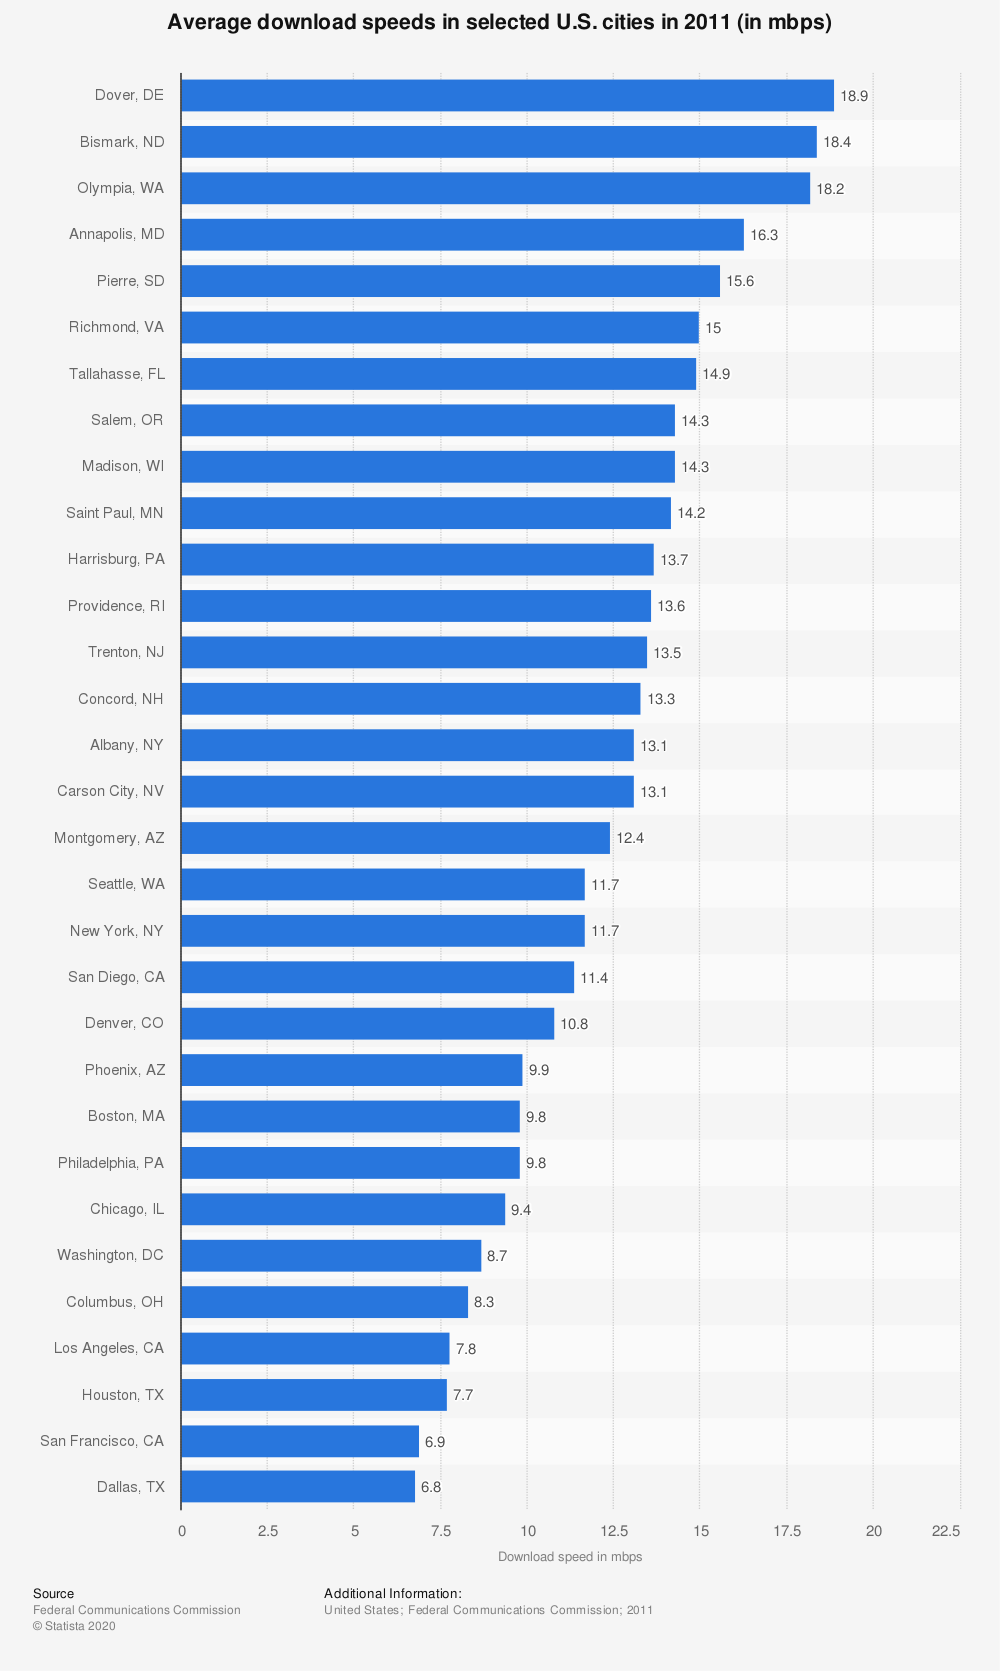 Statistic: Average download speeds in selected U.S. cities in 2011 (in mbps) | Statista